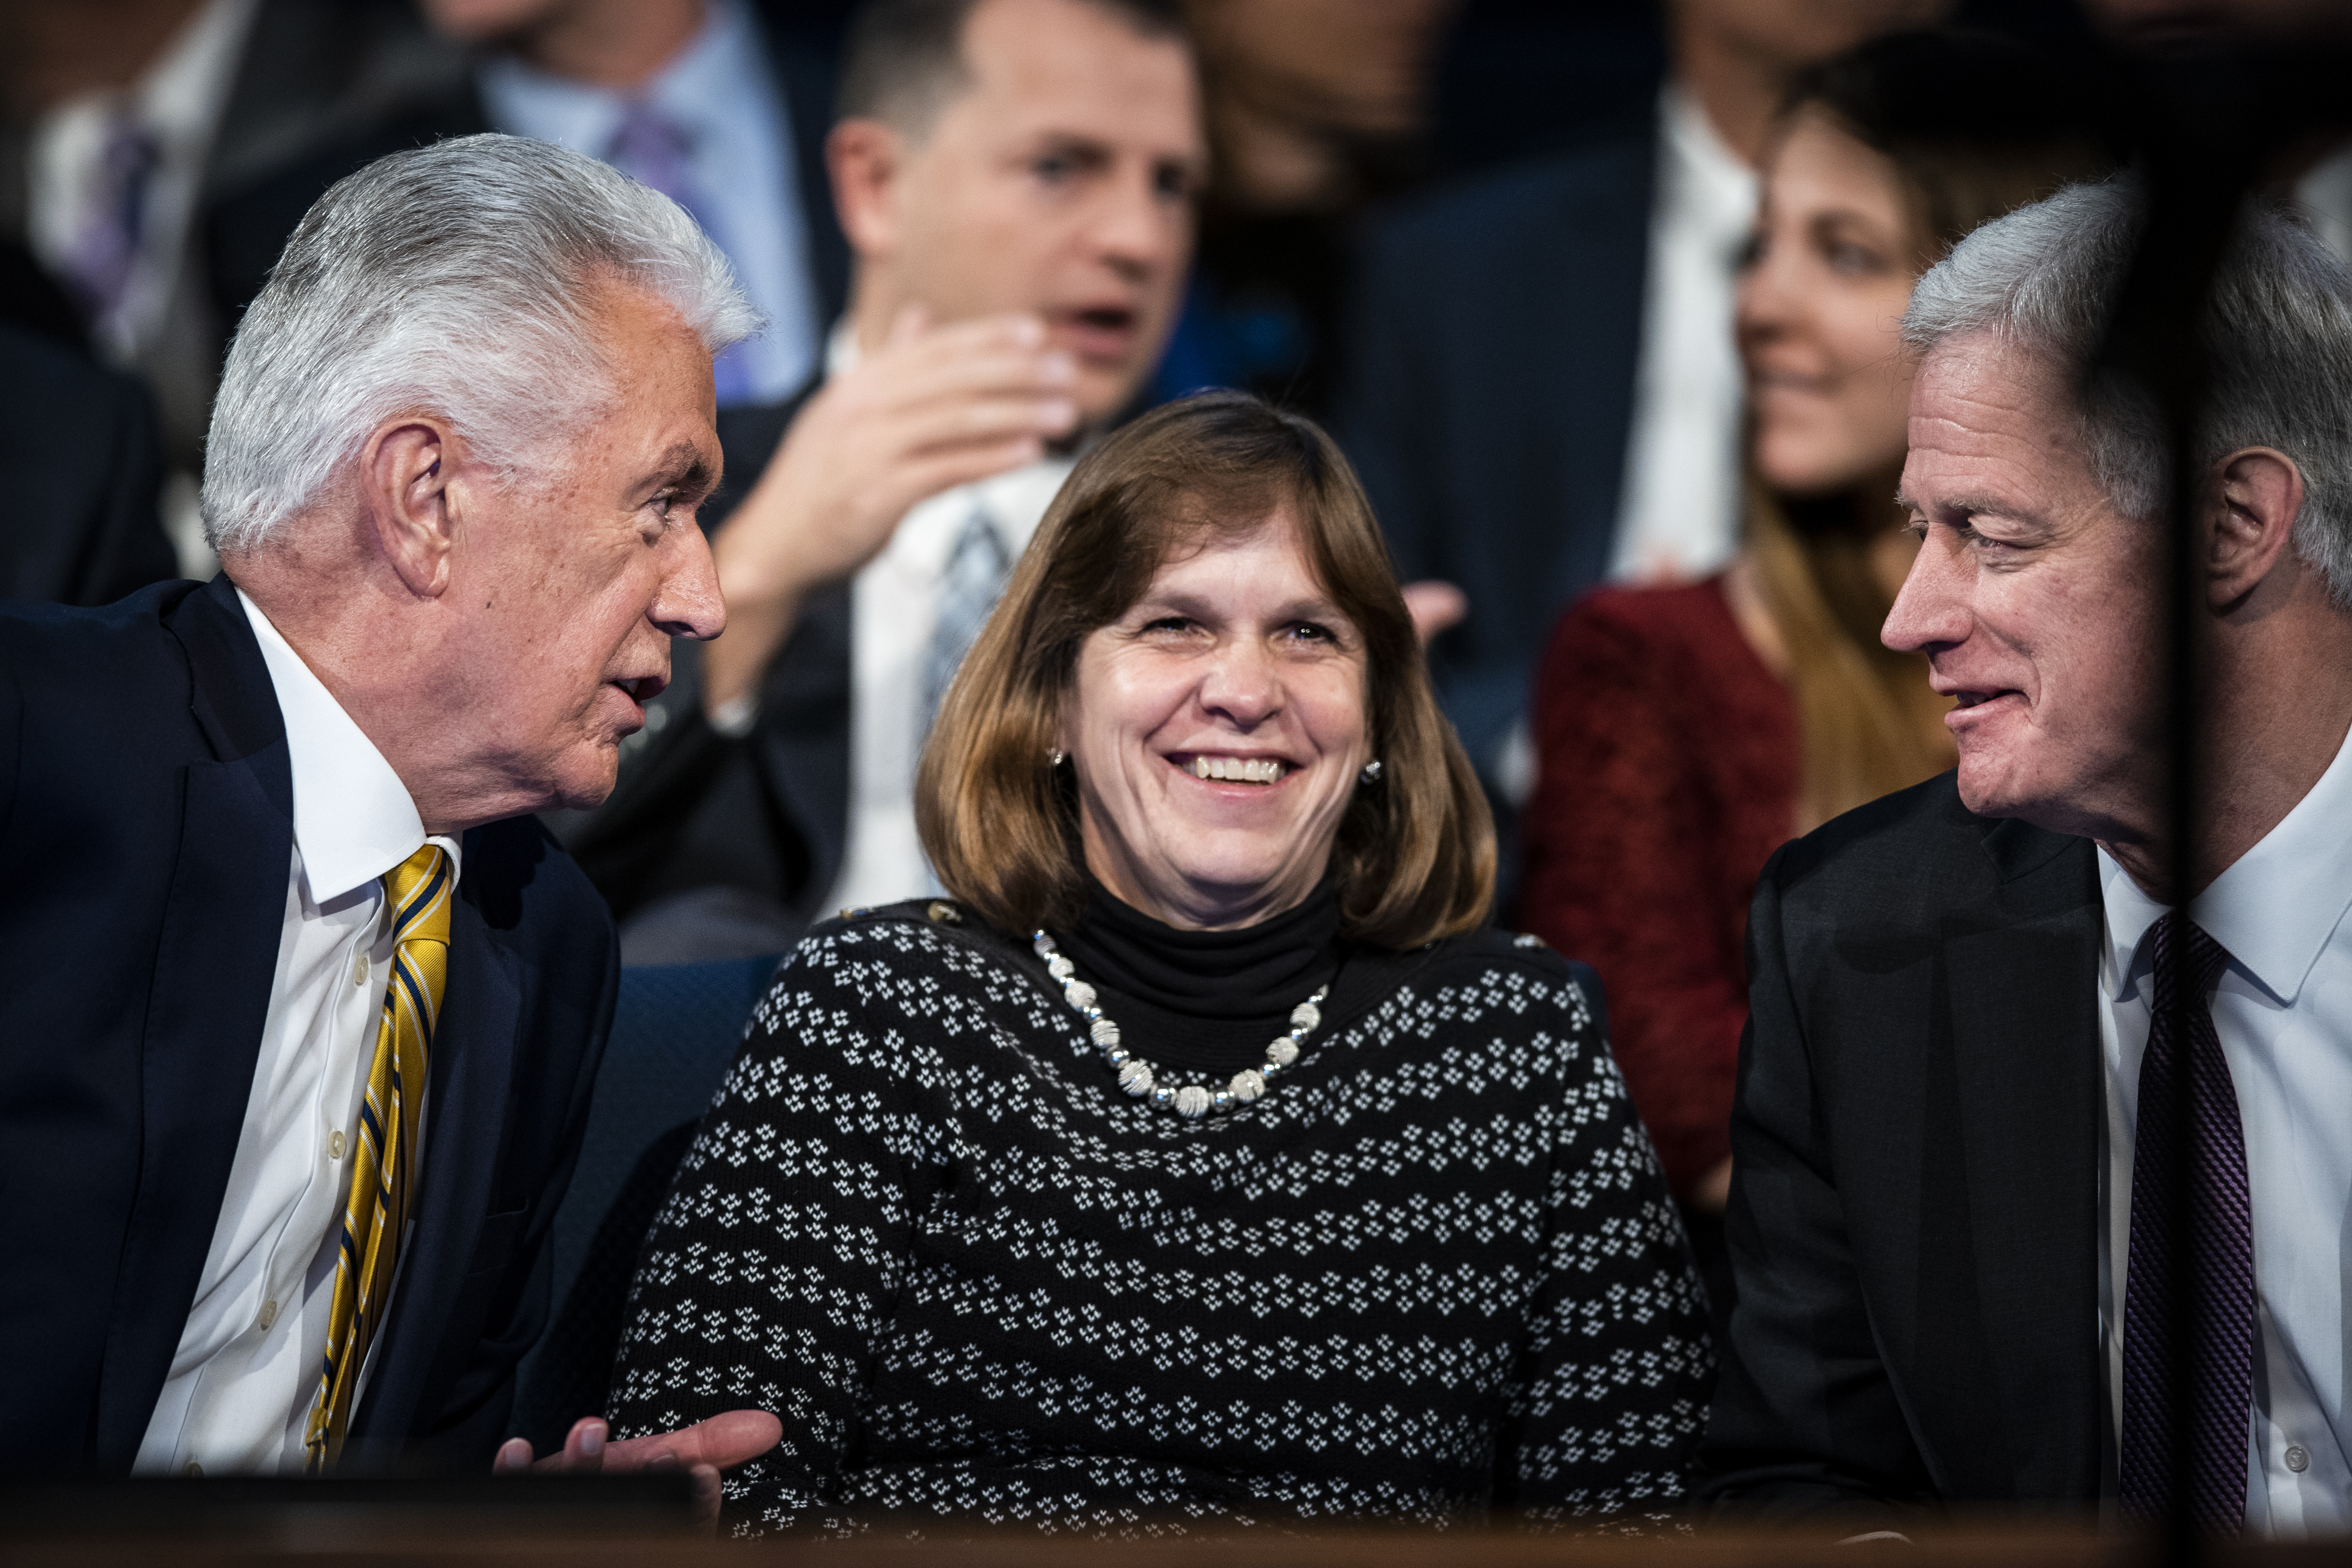 Elder Dieter F. Uchtdorf of the Quorum of the Twelve Apostles sits on the stand with President and Sister Worthen during a devotional on the BYU campus in Provo, Utah on Tuesday, Jan. 15, 2019.